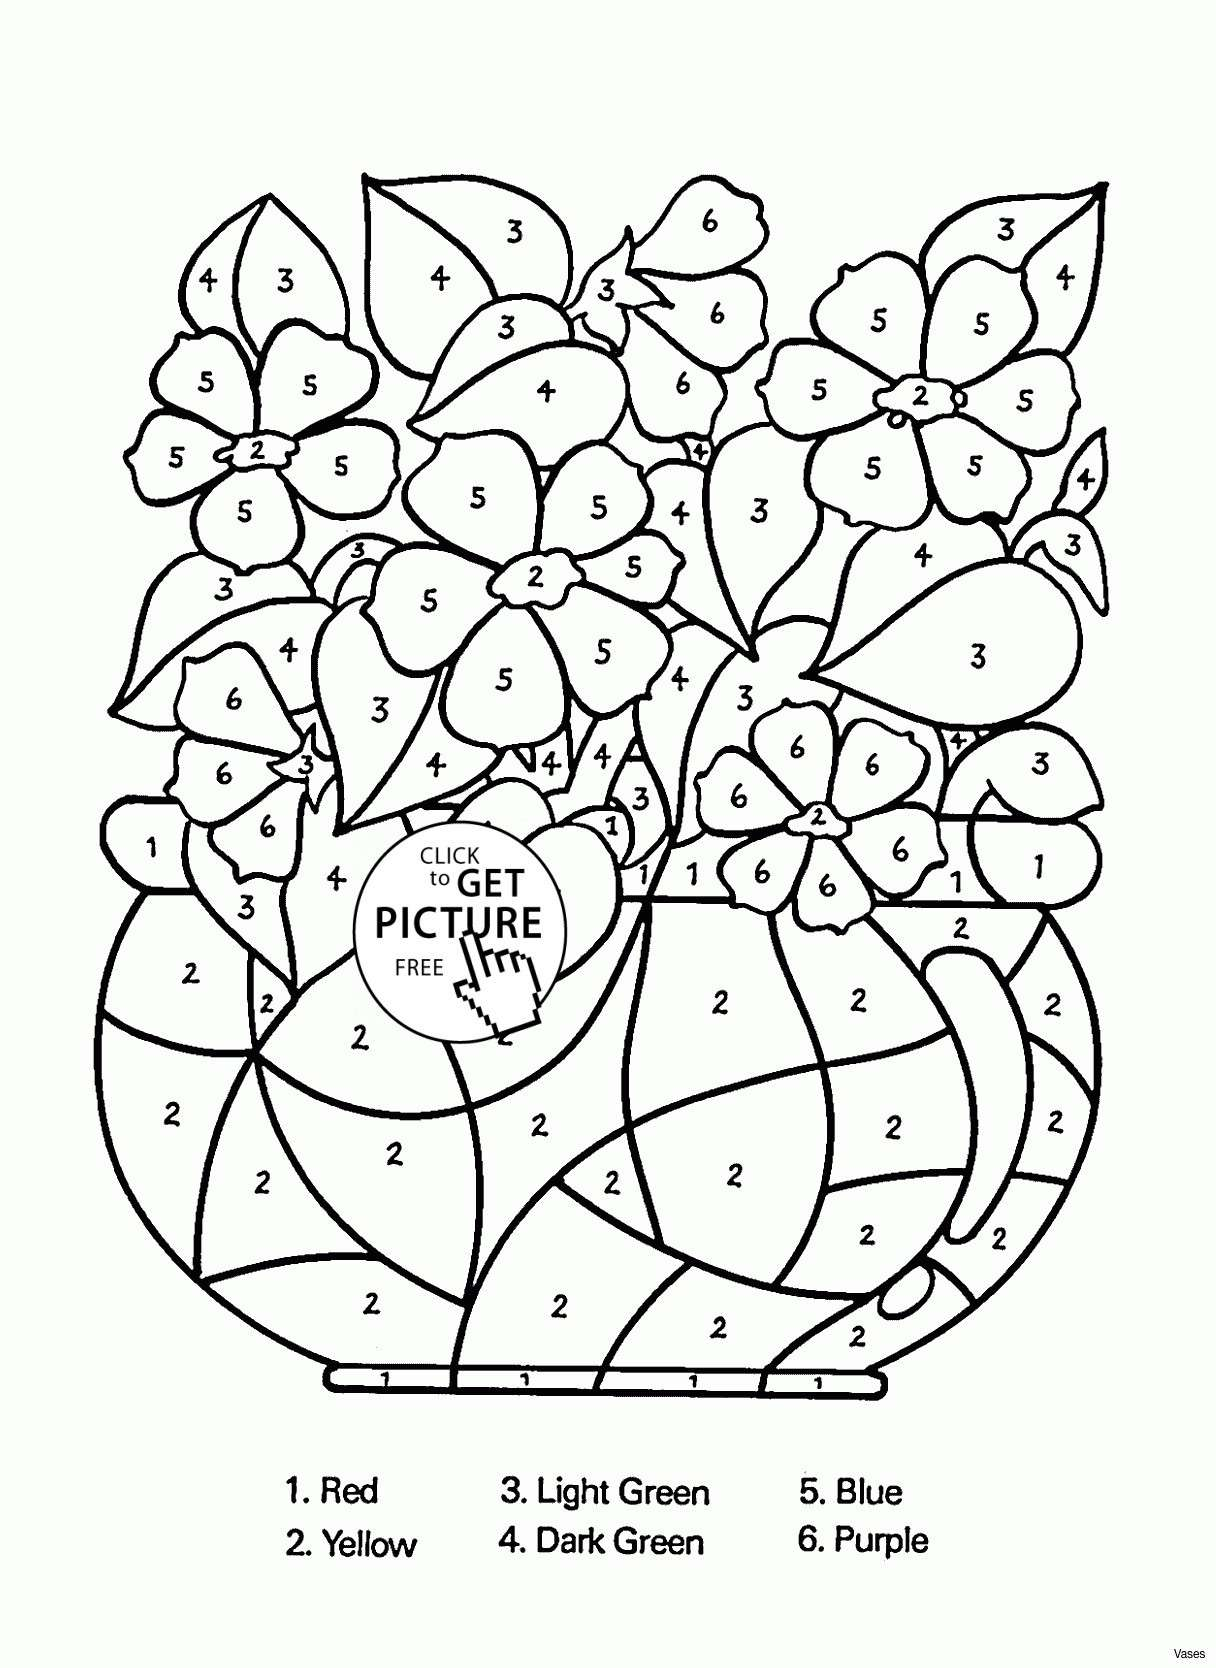 Christmas Coloring Pages Middle School With Kickball Free For